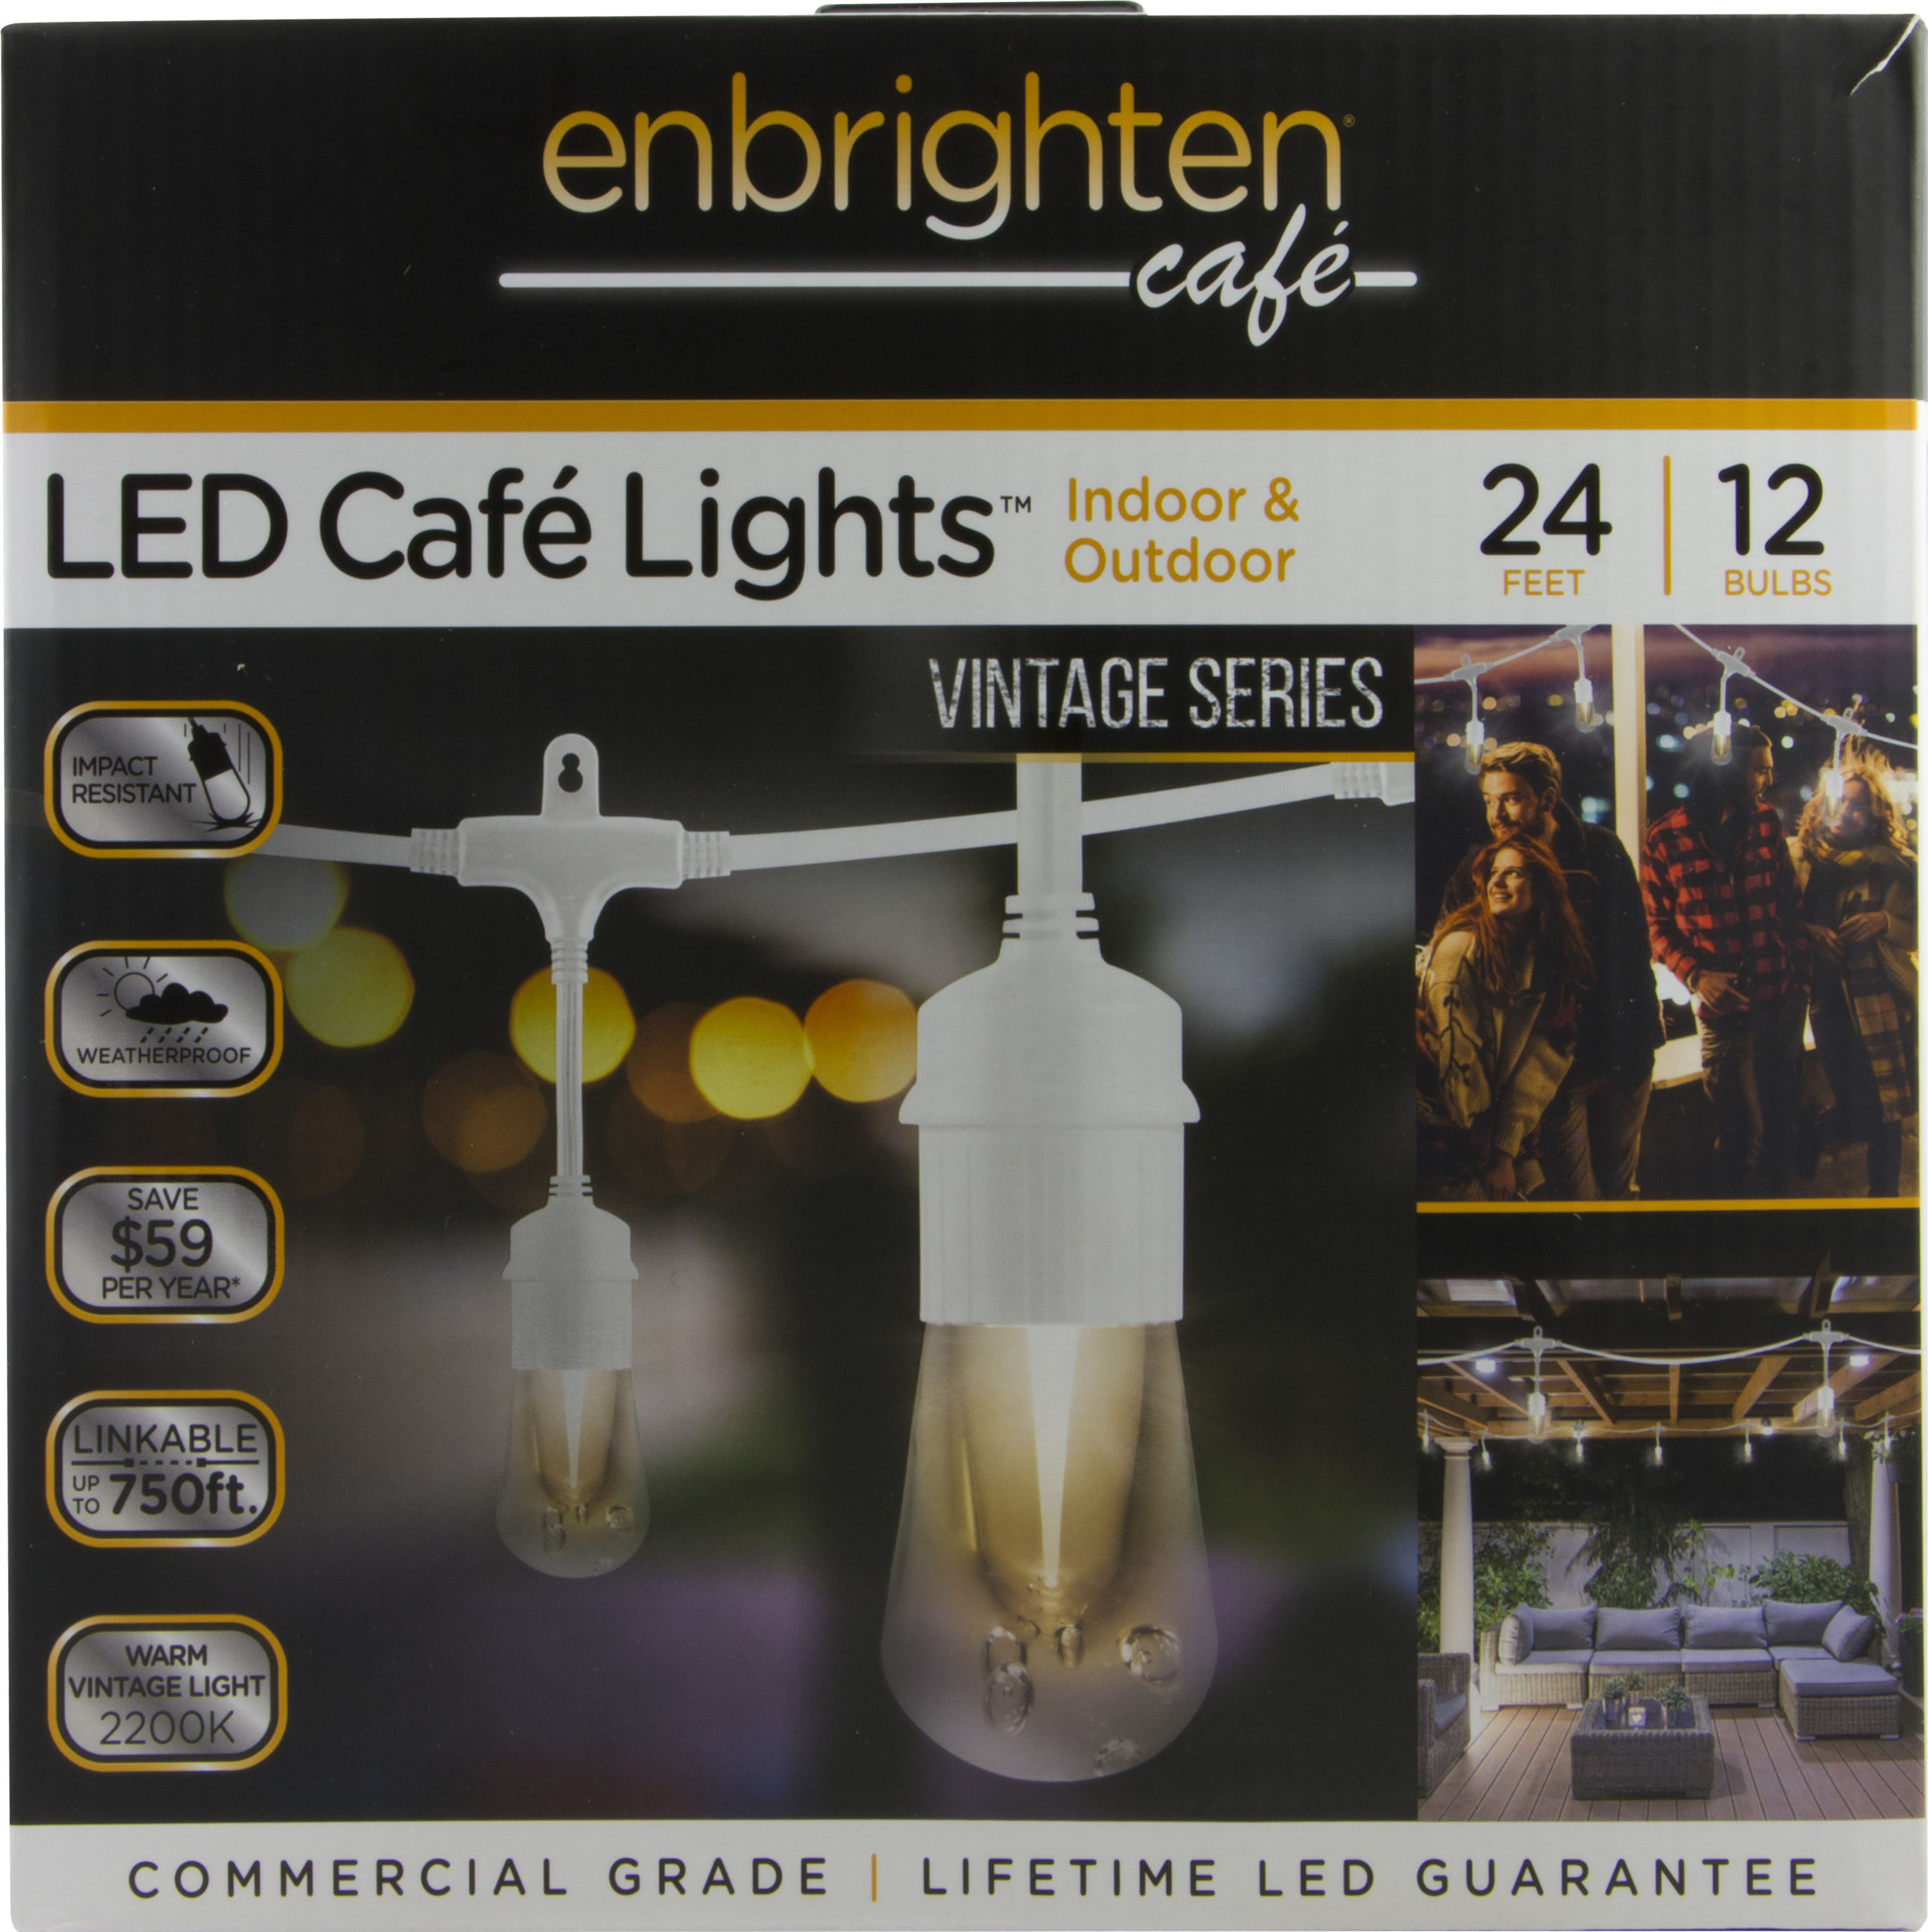 enbrighten cafe led lights review